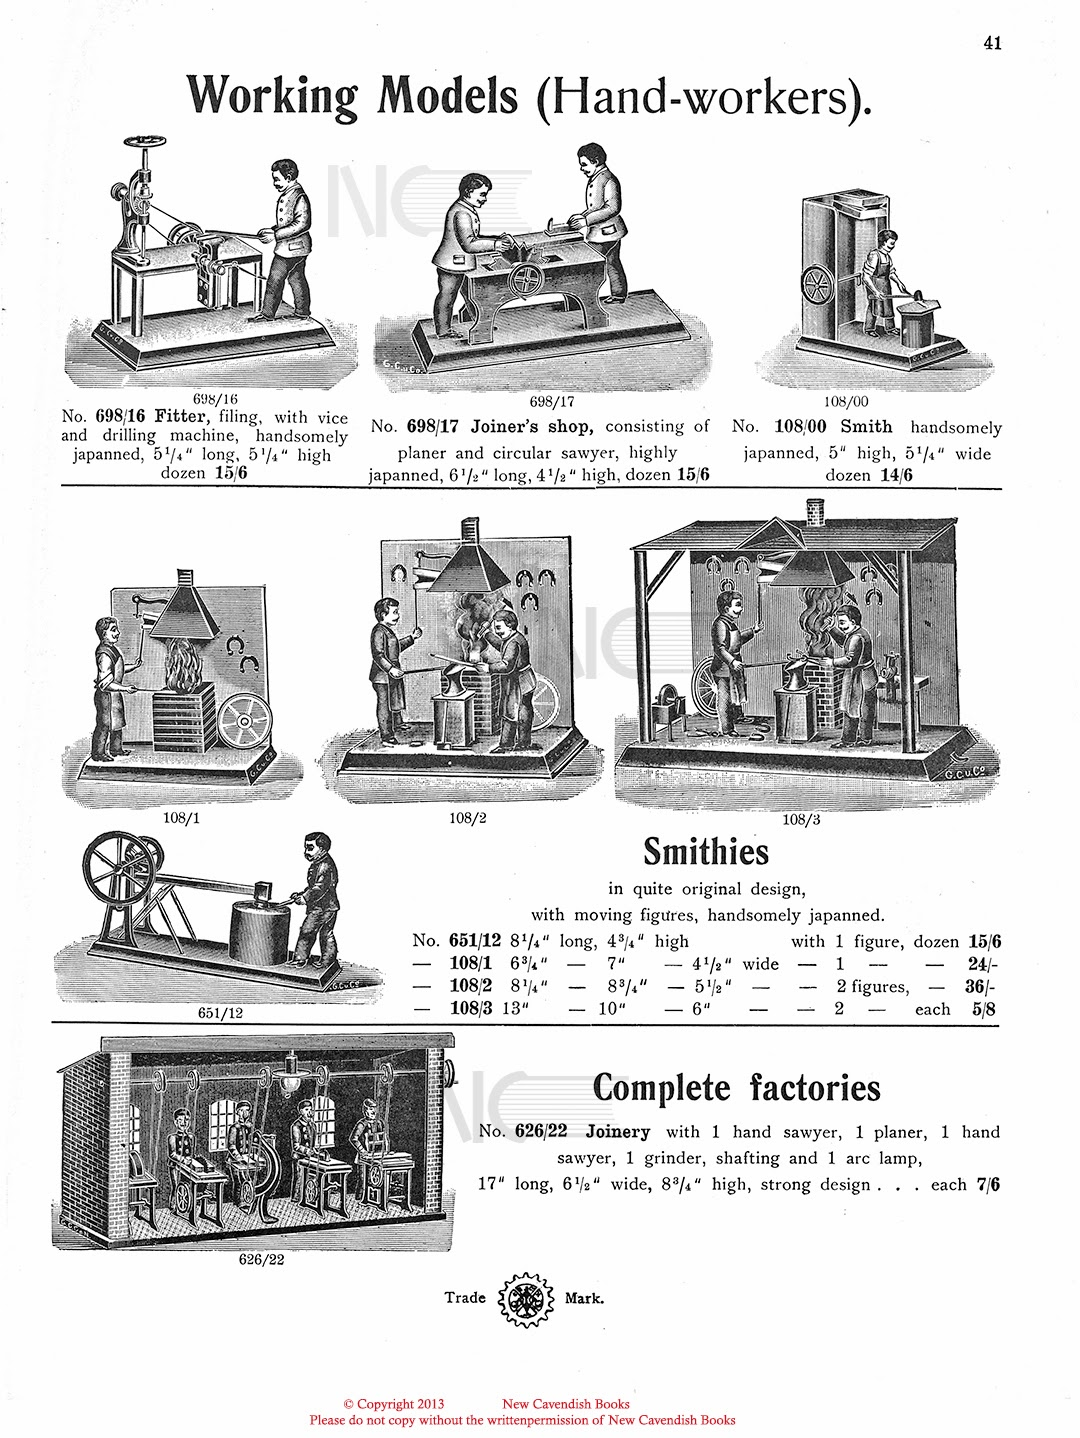 Old Antique Toys The Magnificent Steam Engine Systems Of